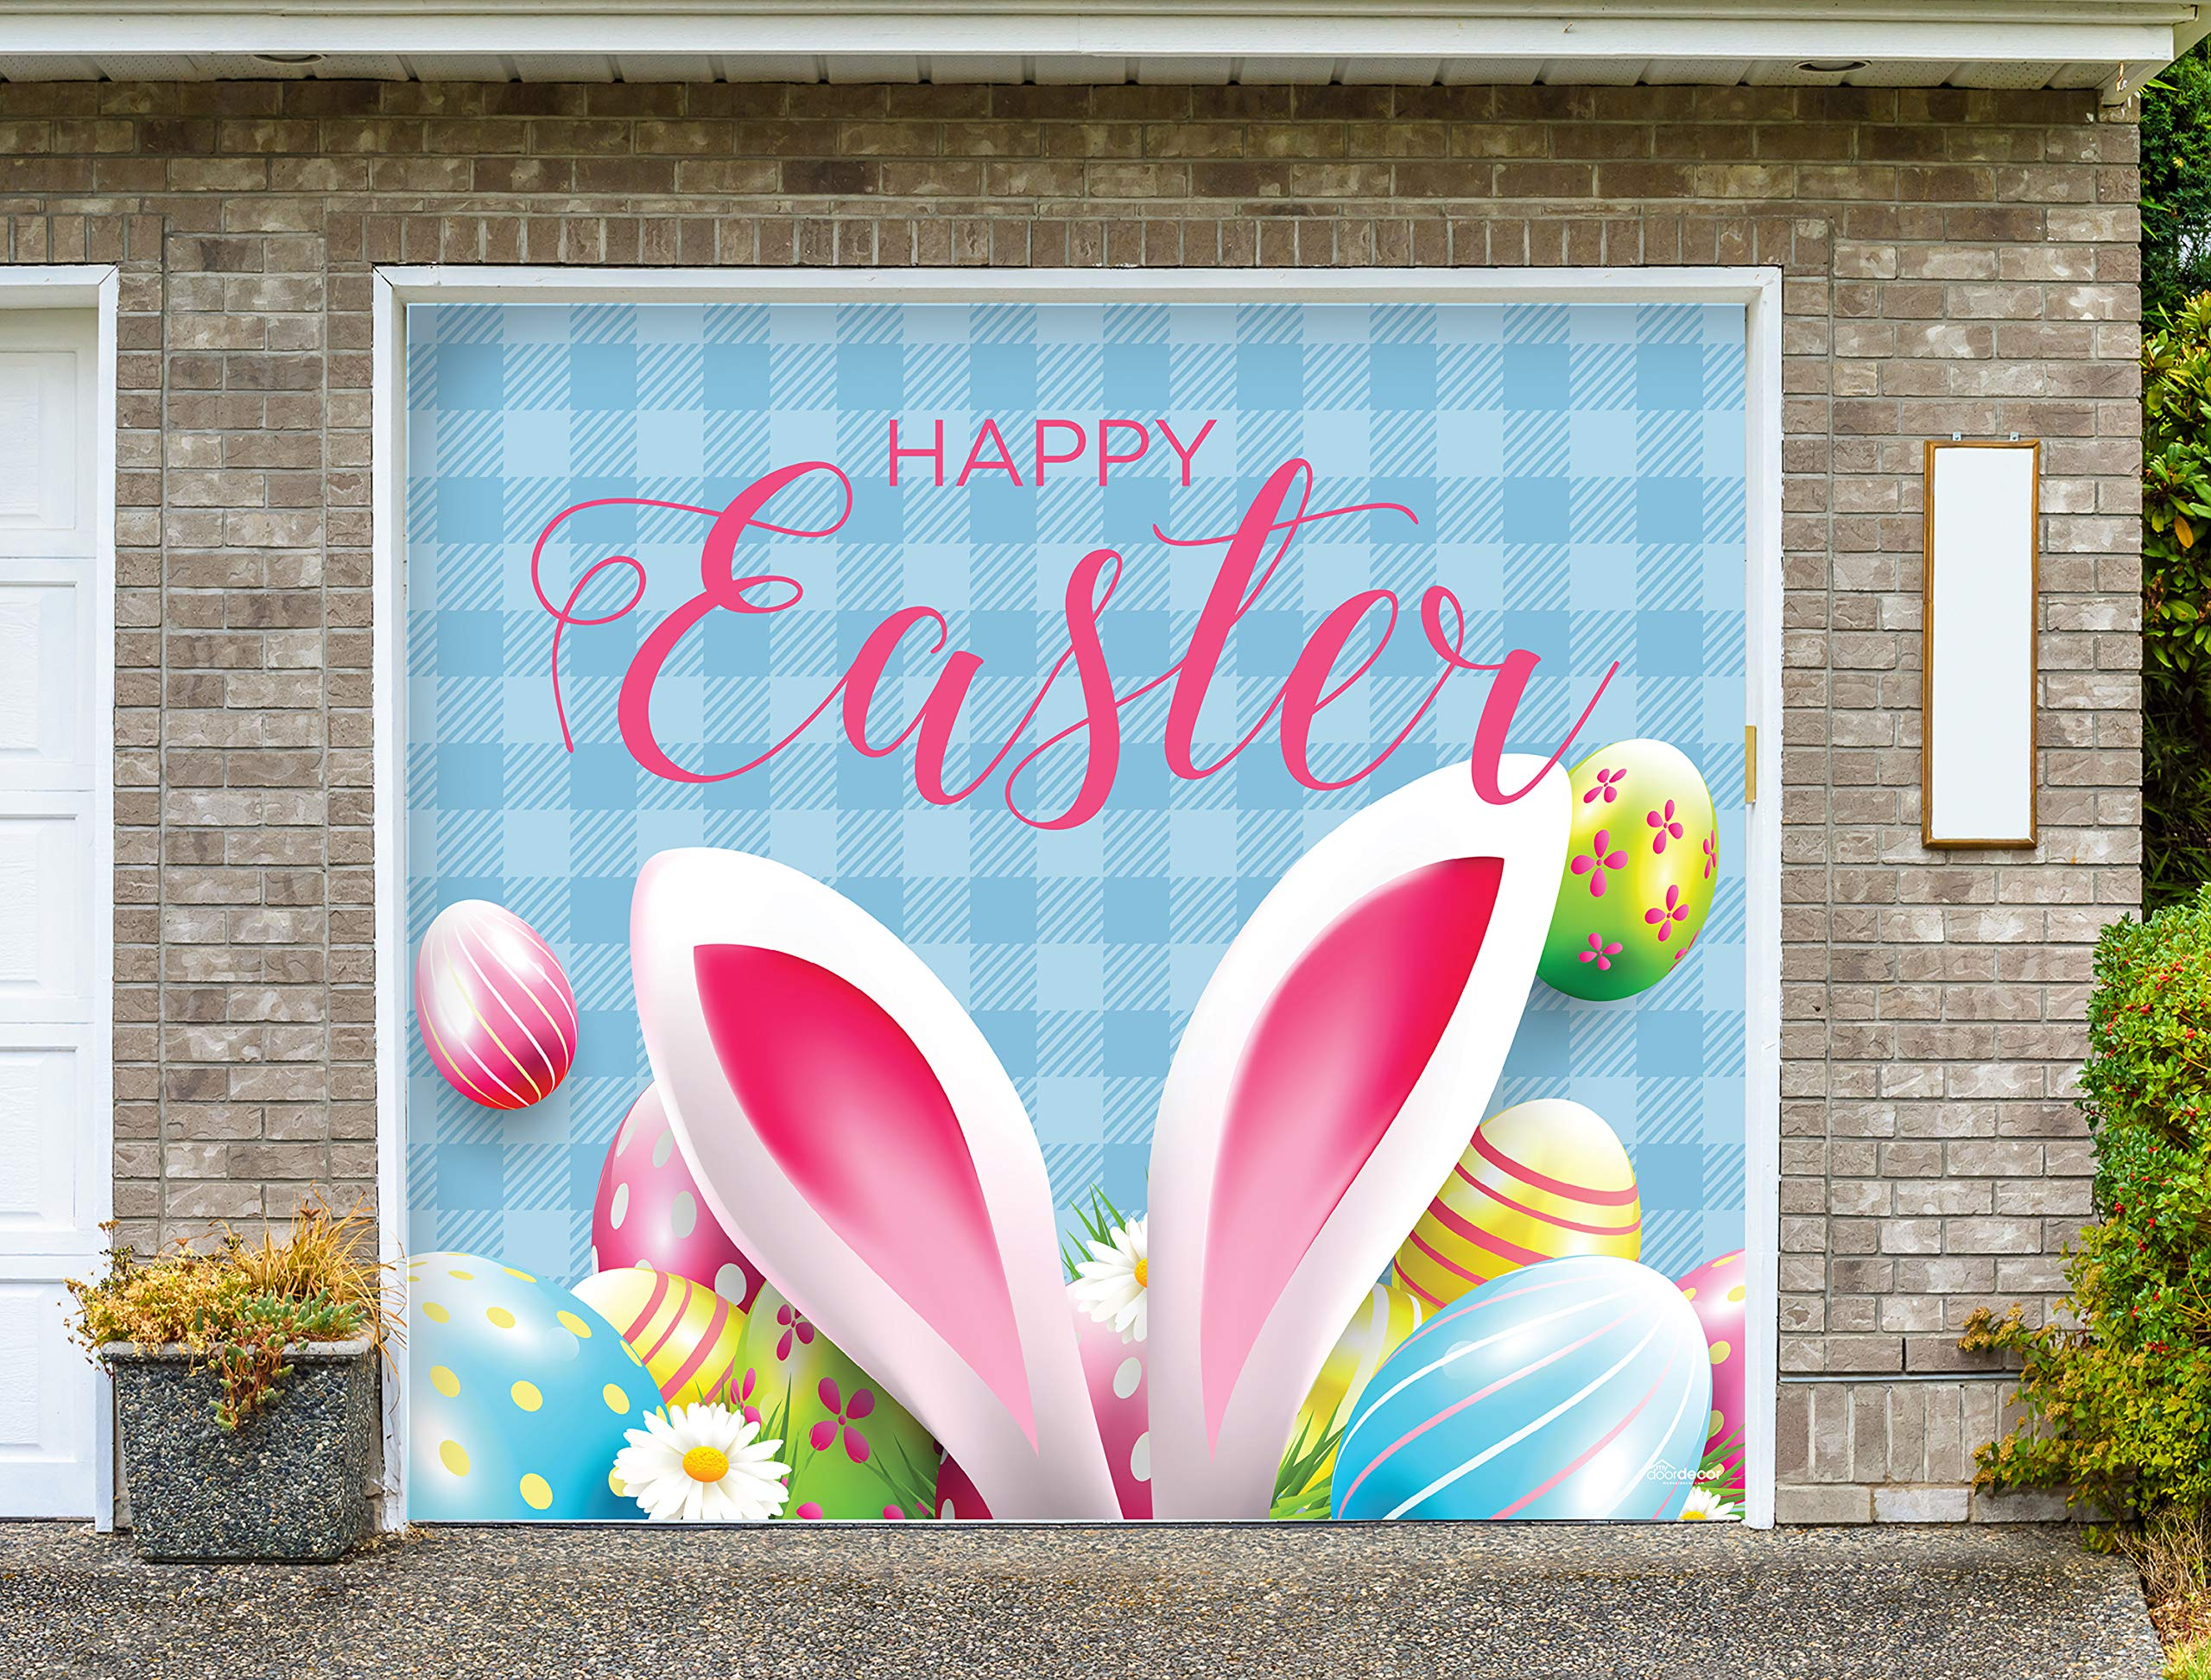 Victory Corps Happy Easter Bunny Ears - Holiday Garage Door Banner Mural Sign Décor 7'x 8' Car Garage - The Original Holiday Garage Door Banner Decor